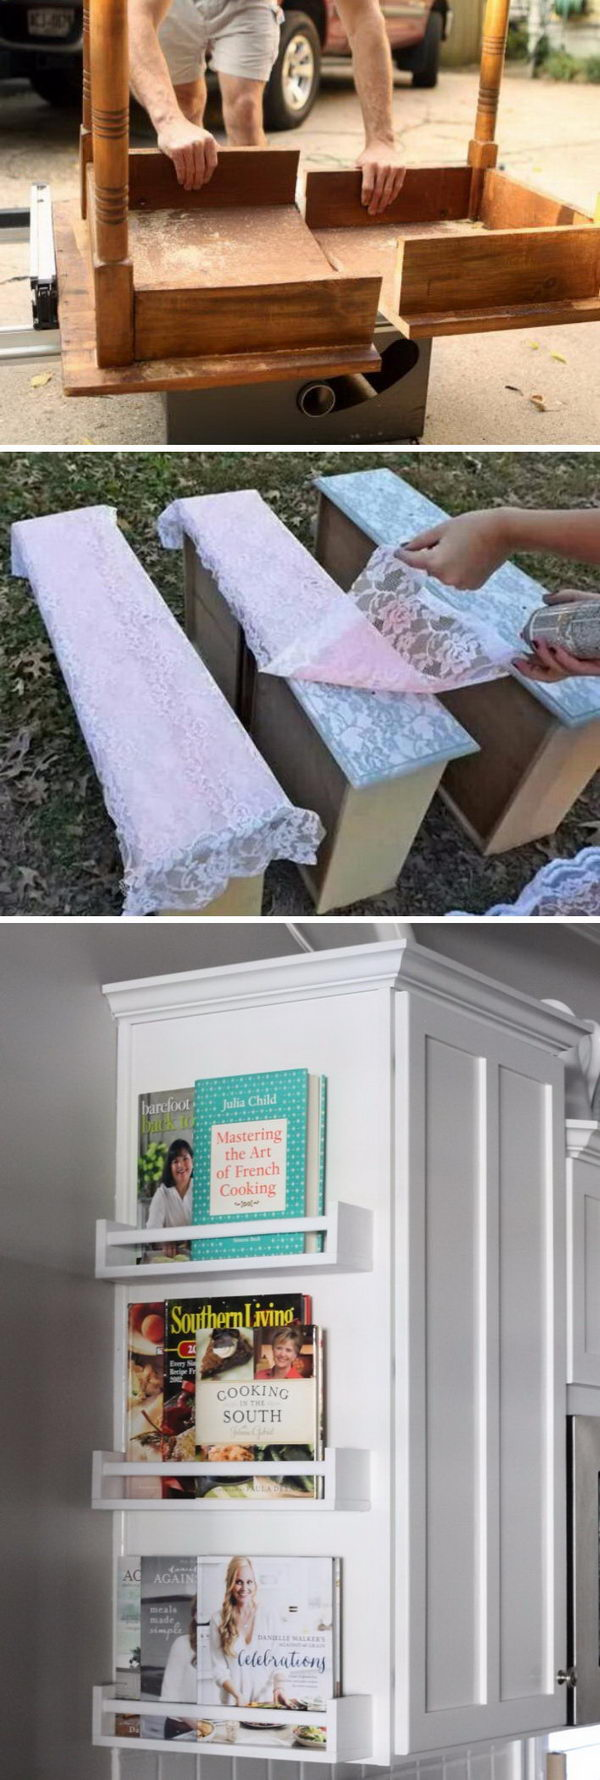 Cool Furniture Transformations or Makeovers.